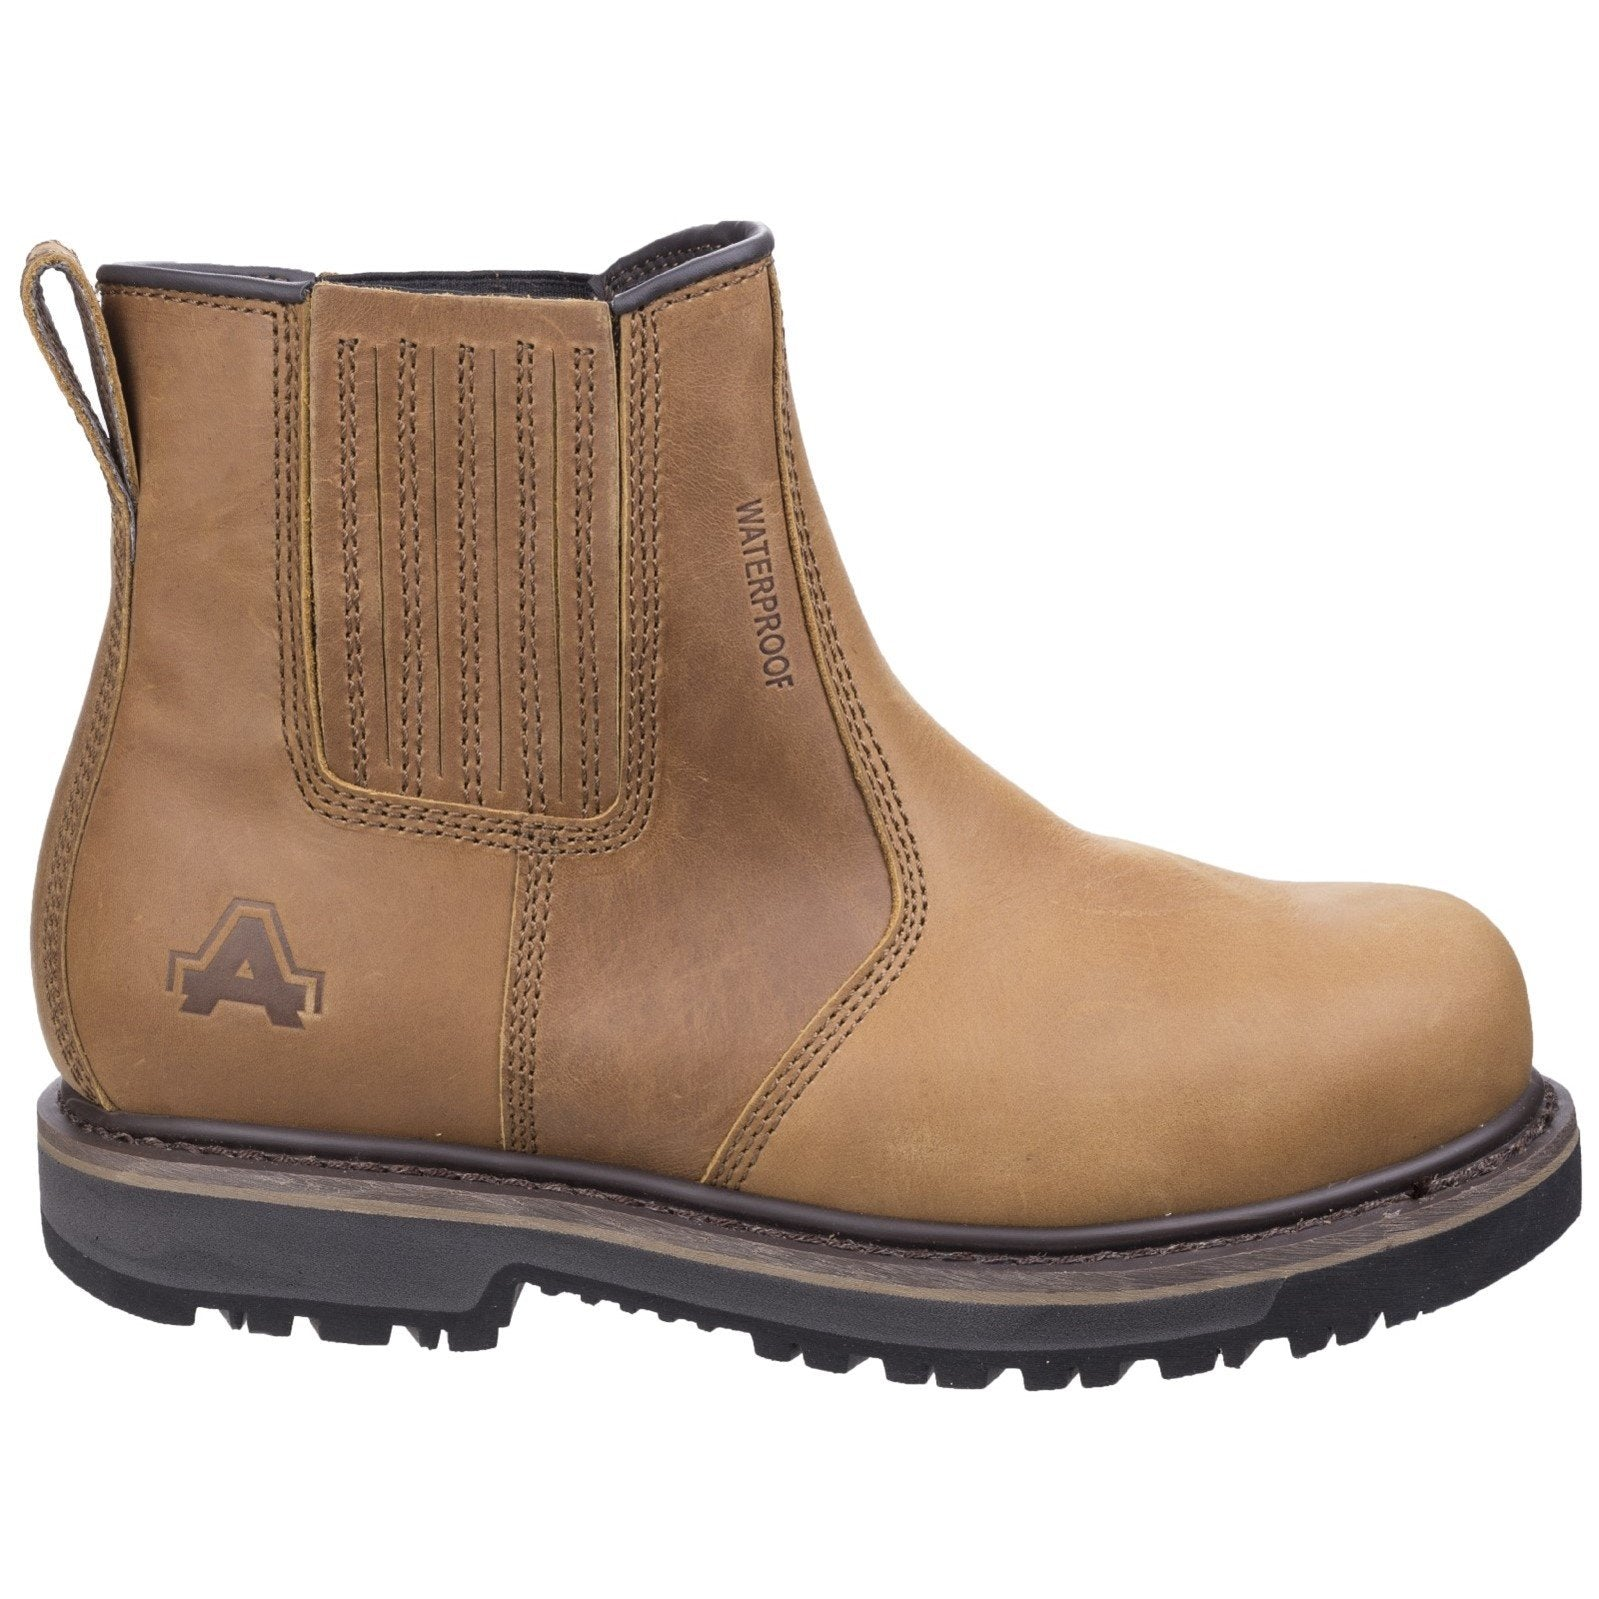 ac9d36f8654 Amblers Goodyear Welted Safety Dealer Boots - GS Workwear